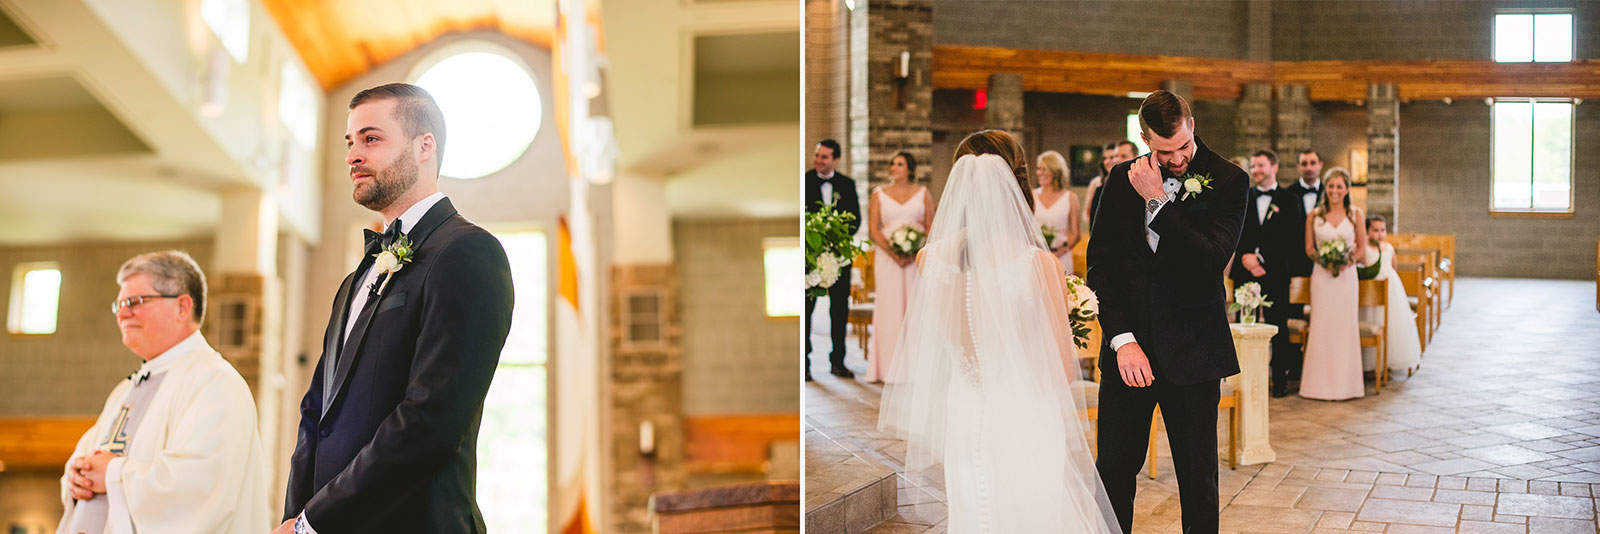 22 groom cries when he sees bride - Club of Hillbrook Wedding // Jenna + Ben